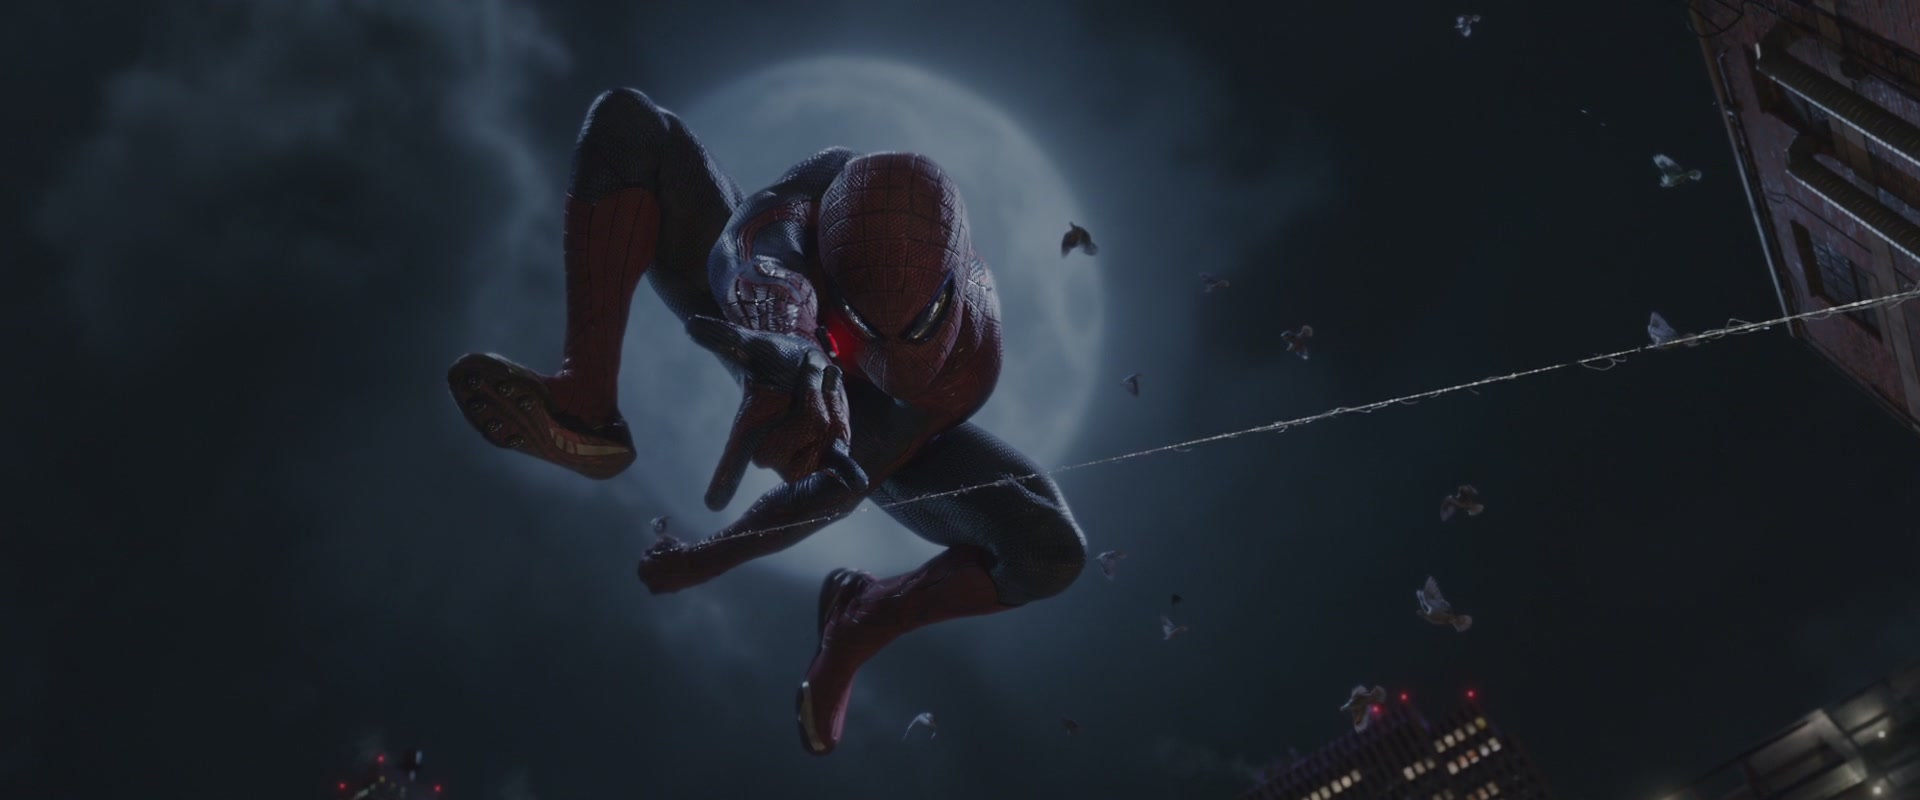 The Amazing Spider Man2012 Images The Amazing Spider Man